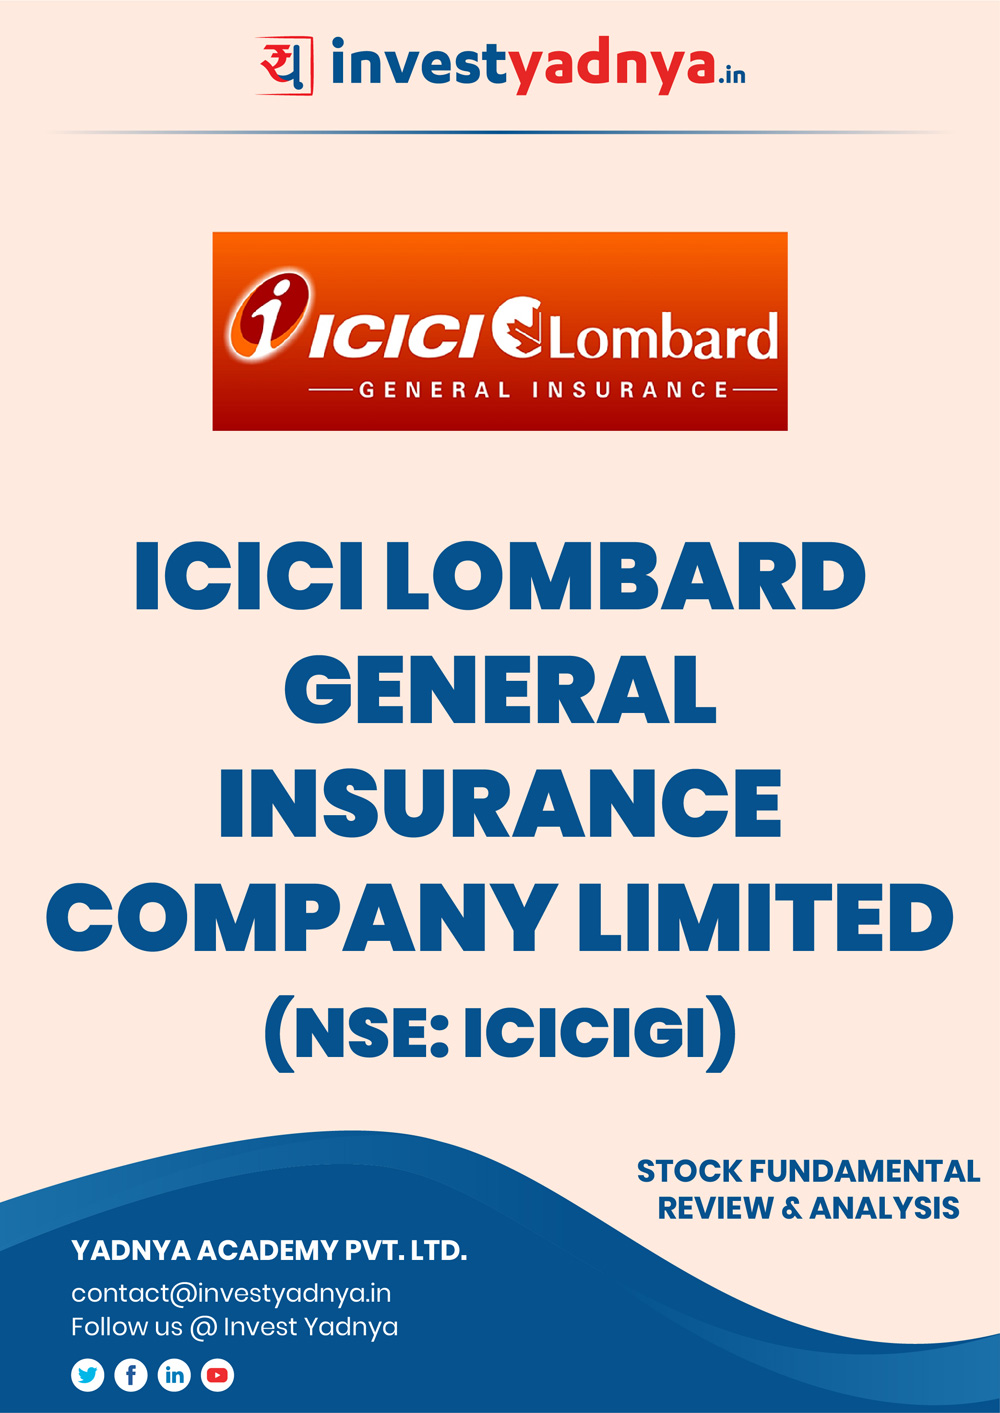 ICICI Lombard General Insurance Company/Stock Review & Analysis based on Q42018-19 and FY2018-19 data. The book contains the Fundamental Analysis of the company considering both Quantitative (Financial) and Qualitative Parameters.